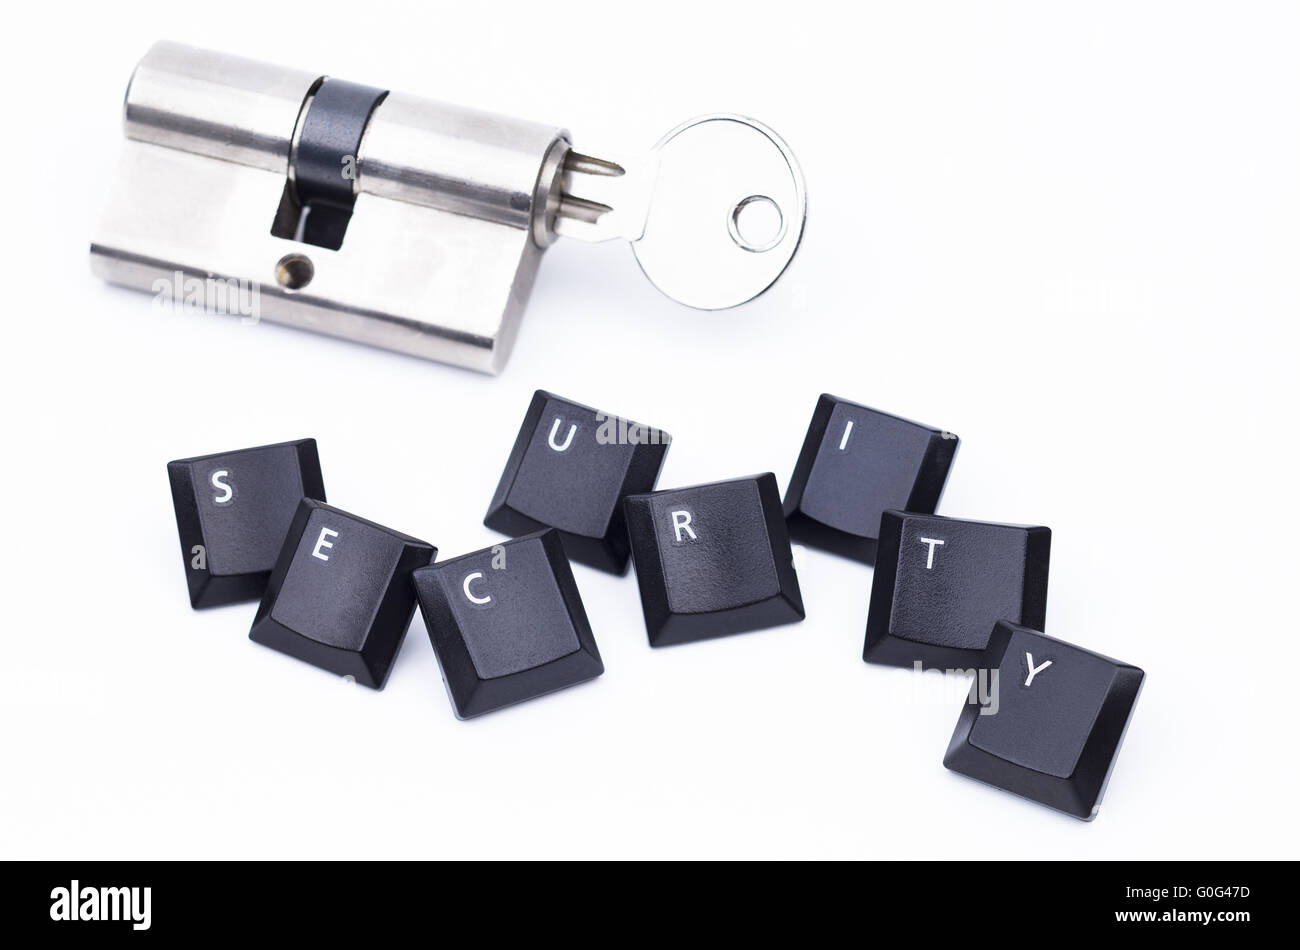 Security - Stock Image